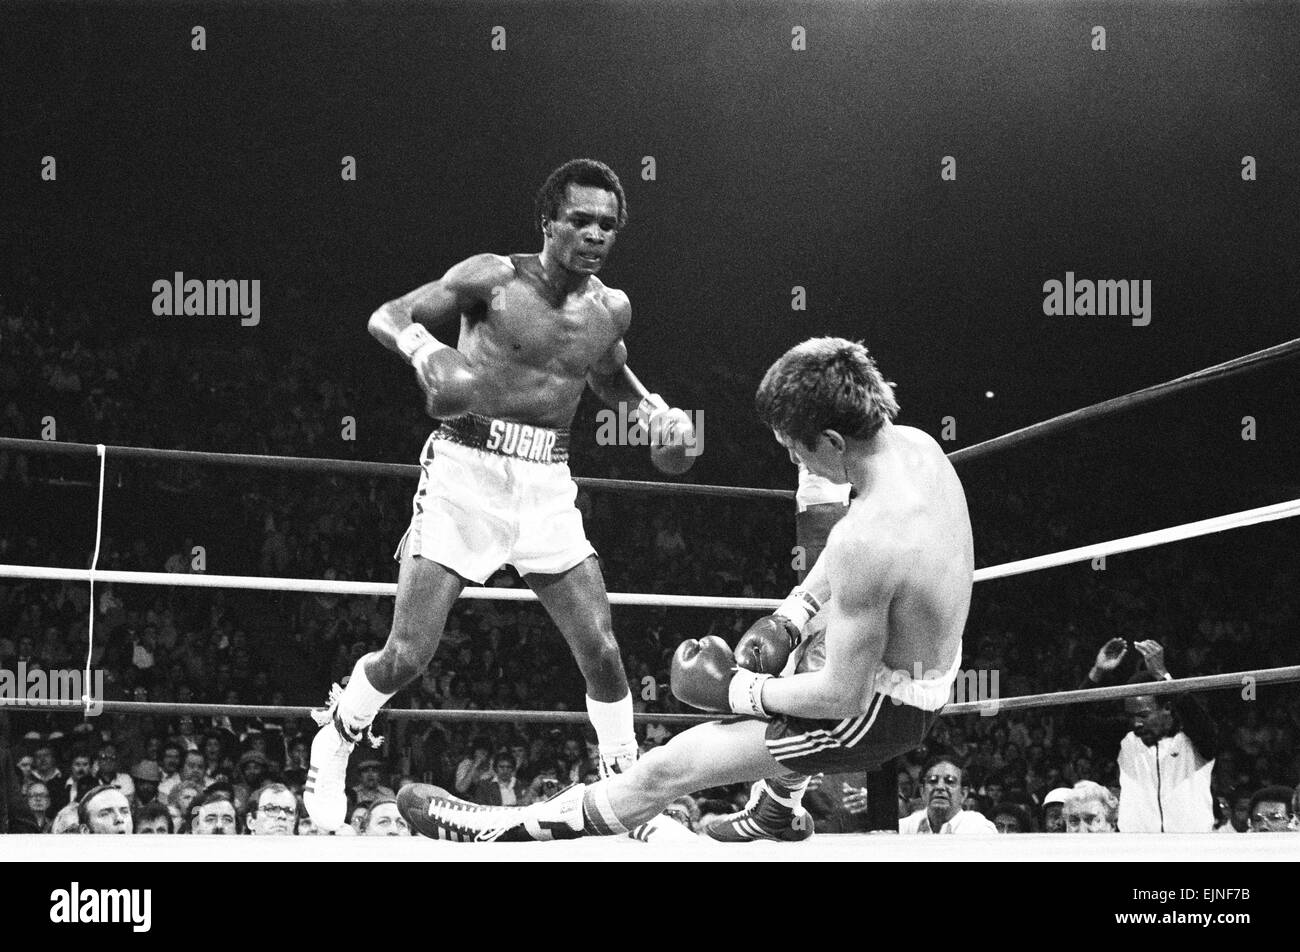 Dave 'Boy' Green v Sugar Ray Leonard - Apr 1980 Dave 'Boy' Green gets KO'd in the 4th Round - Stock Image